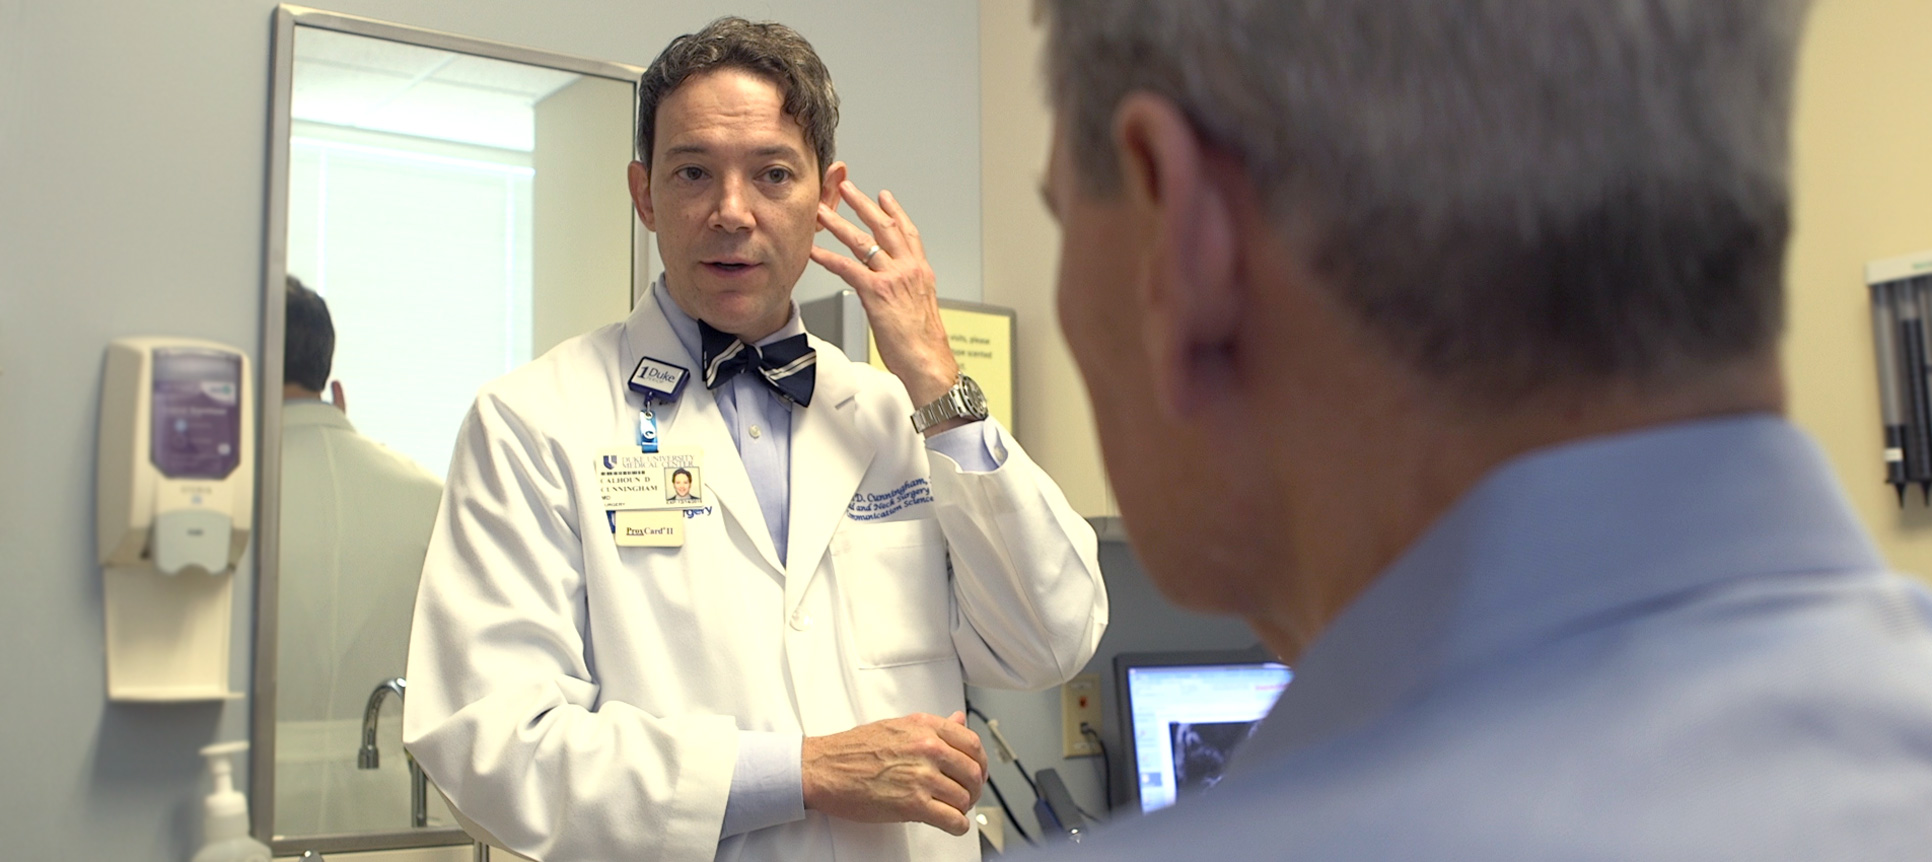 Dr. Calhoun Cunningham, MD, speaks with a patient about skull base tumor treatment options.